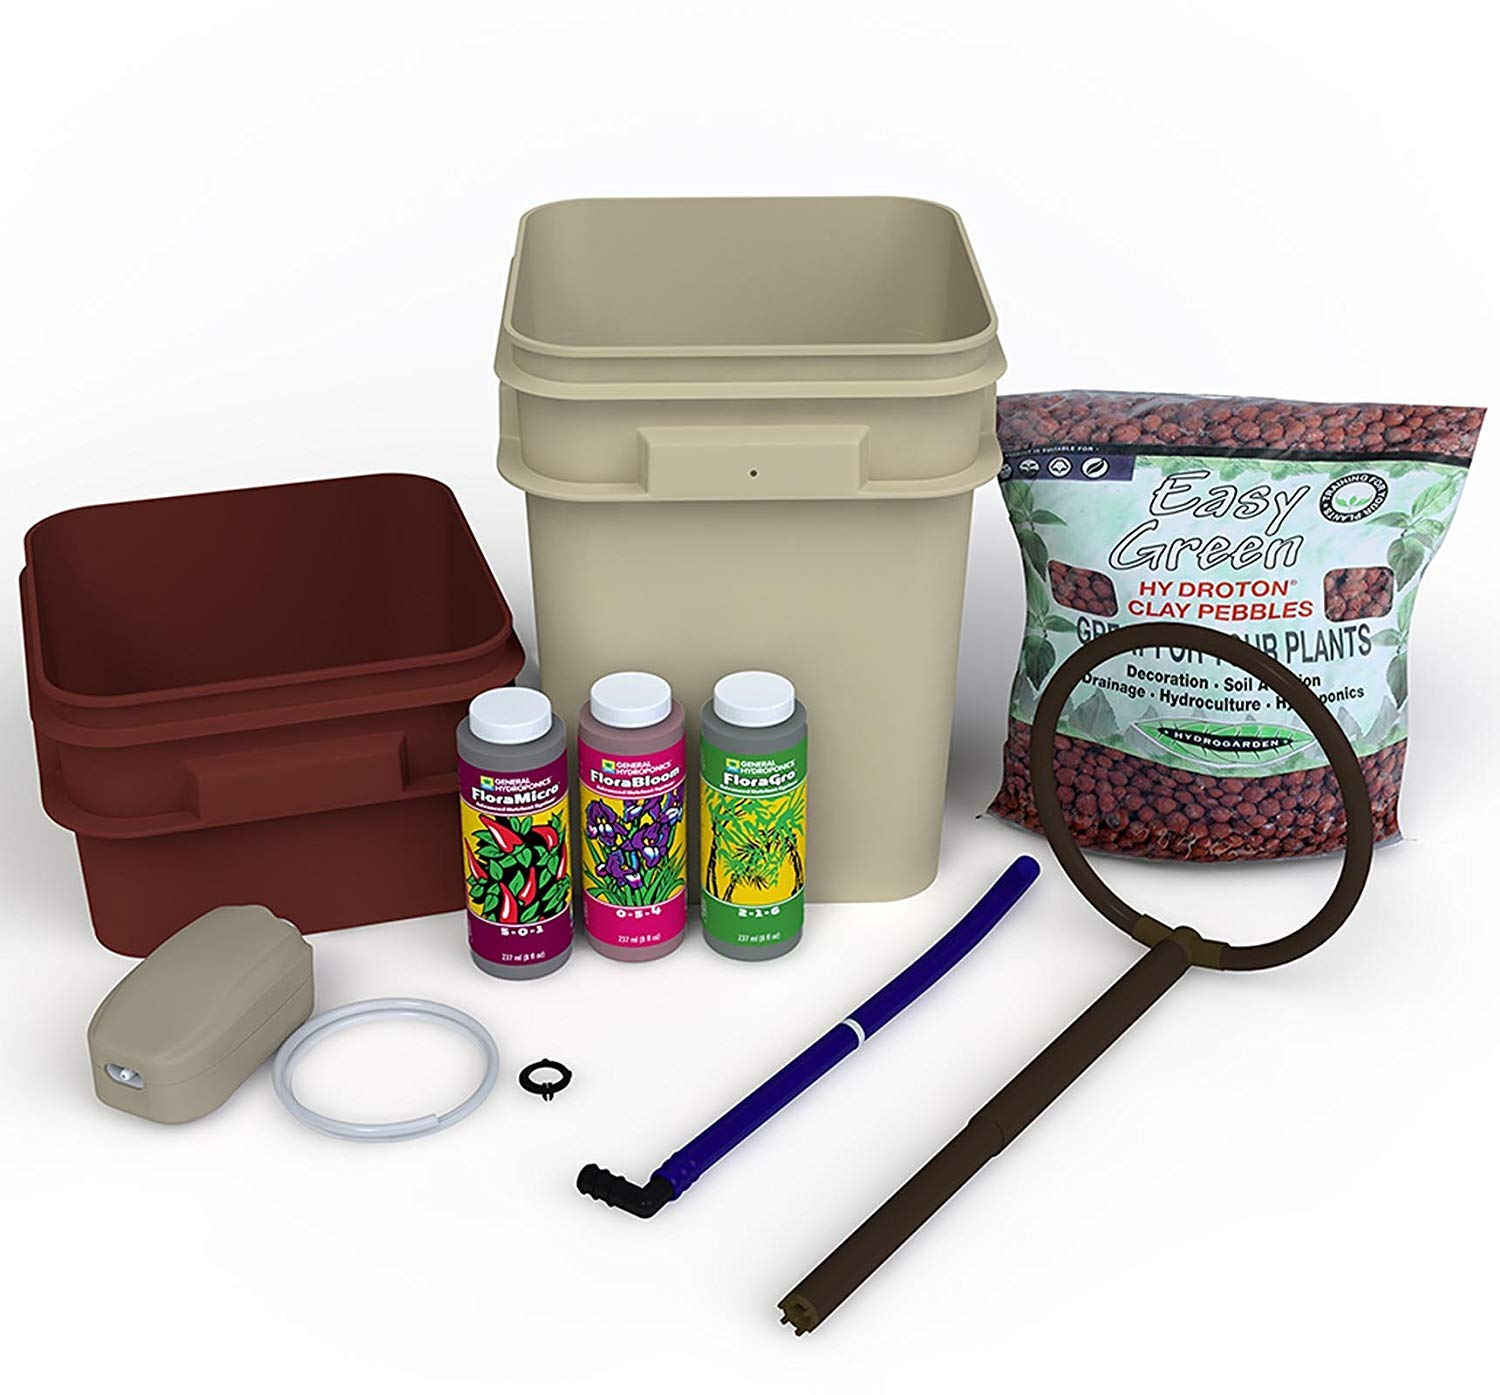 General Hydroponics Waterfarm Complete Hydroponic System Grow Kit | GH4120 B001PKQTFO